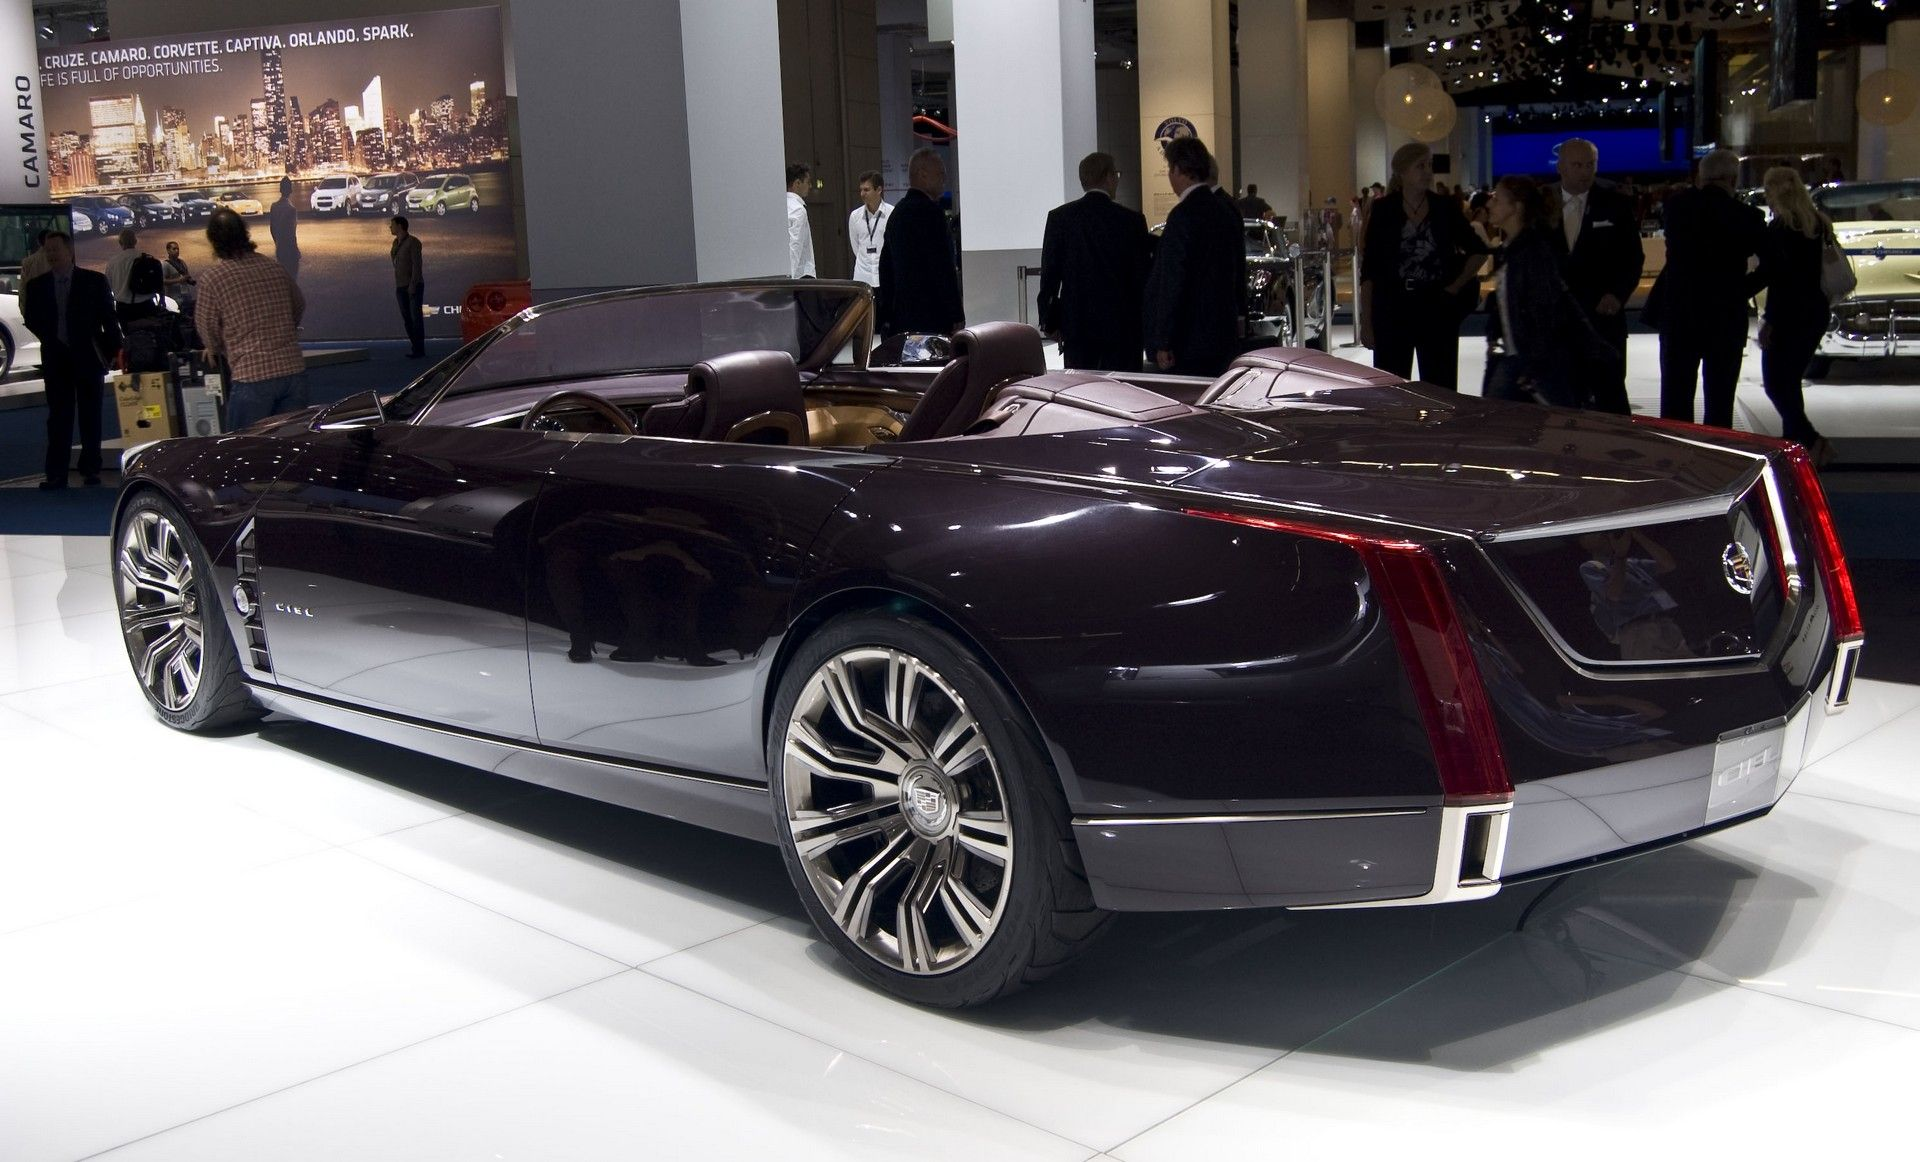 2019 cadillac ciel convertible price | cars and trucks | pinterest